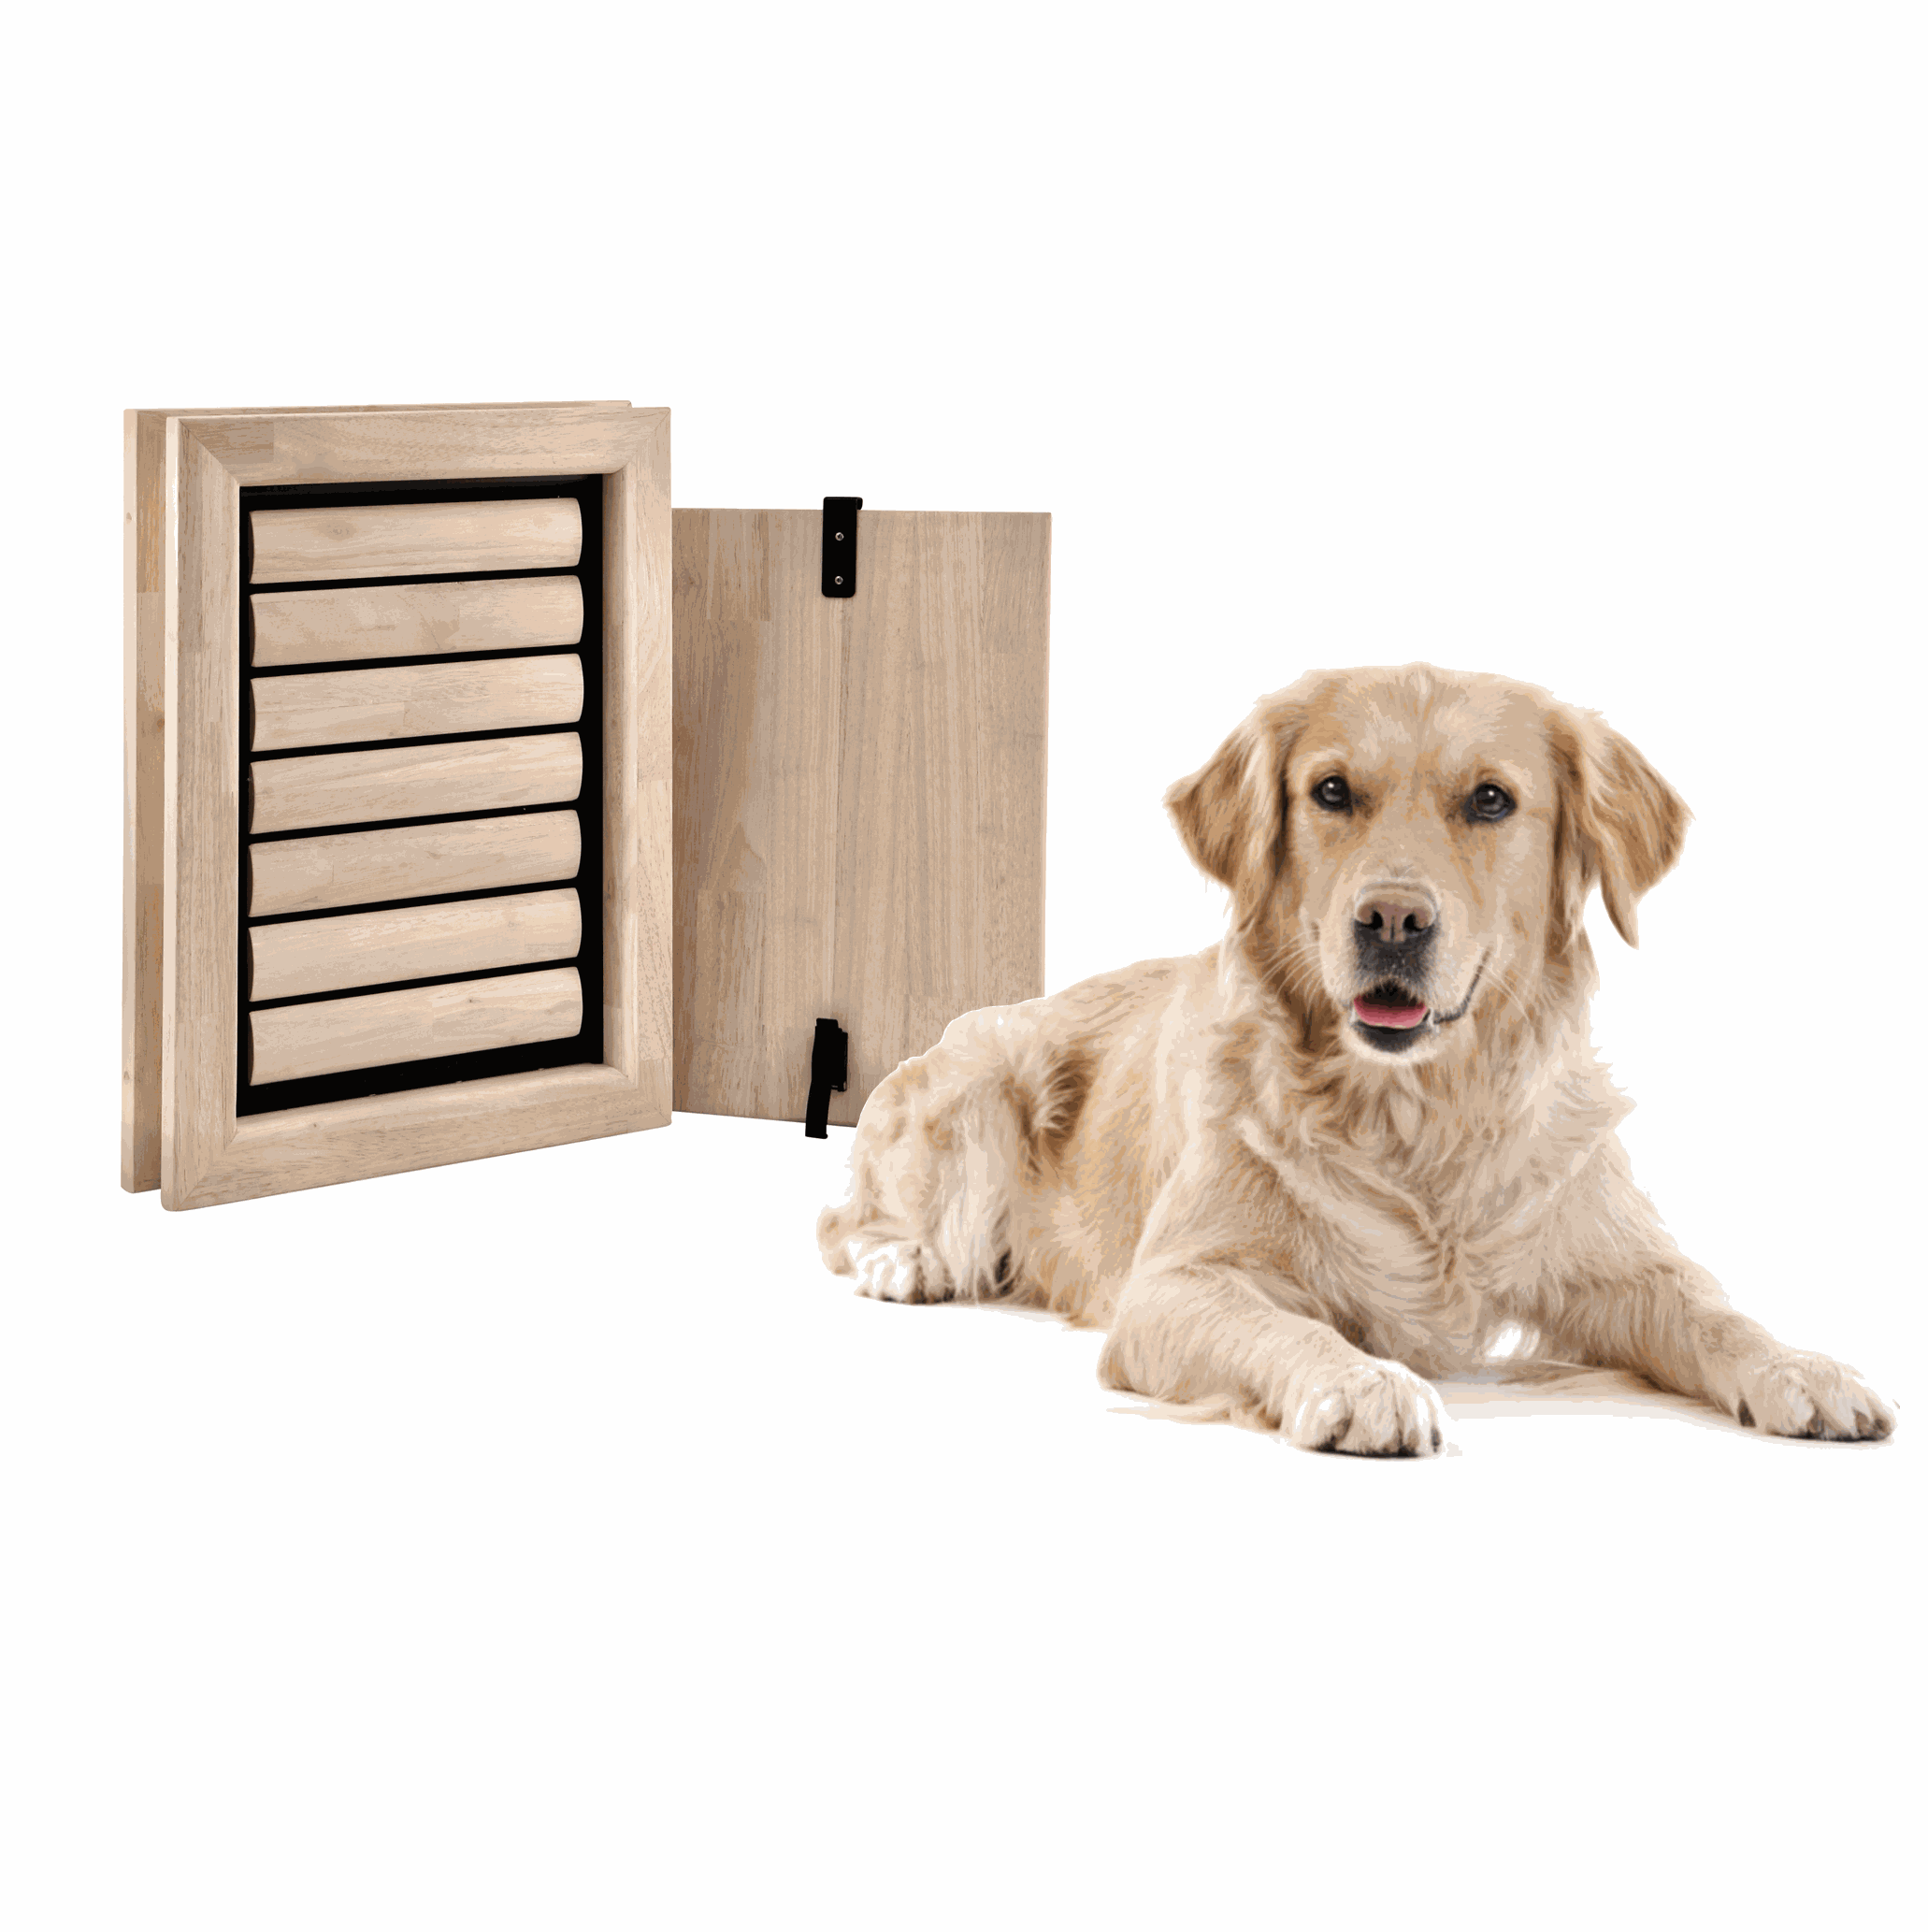 Dog Flap | Dog Door | Bouncer (Large) dog flap for large dogs | fits in doors and walls | Labrador, German Shepherd, Golden Retriever, Bordercollie | © Tomsgates